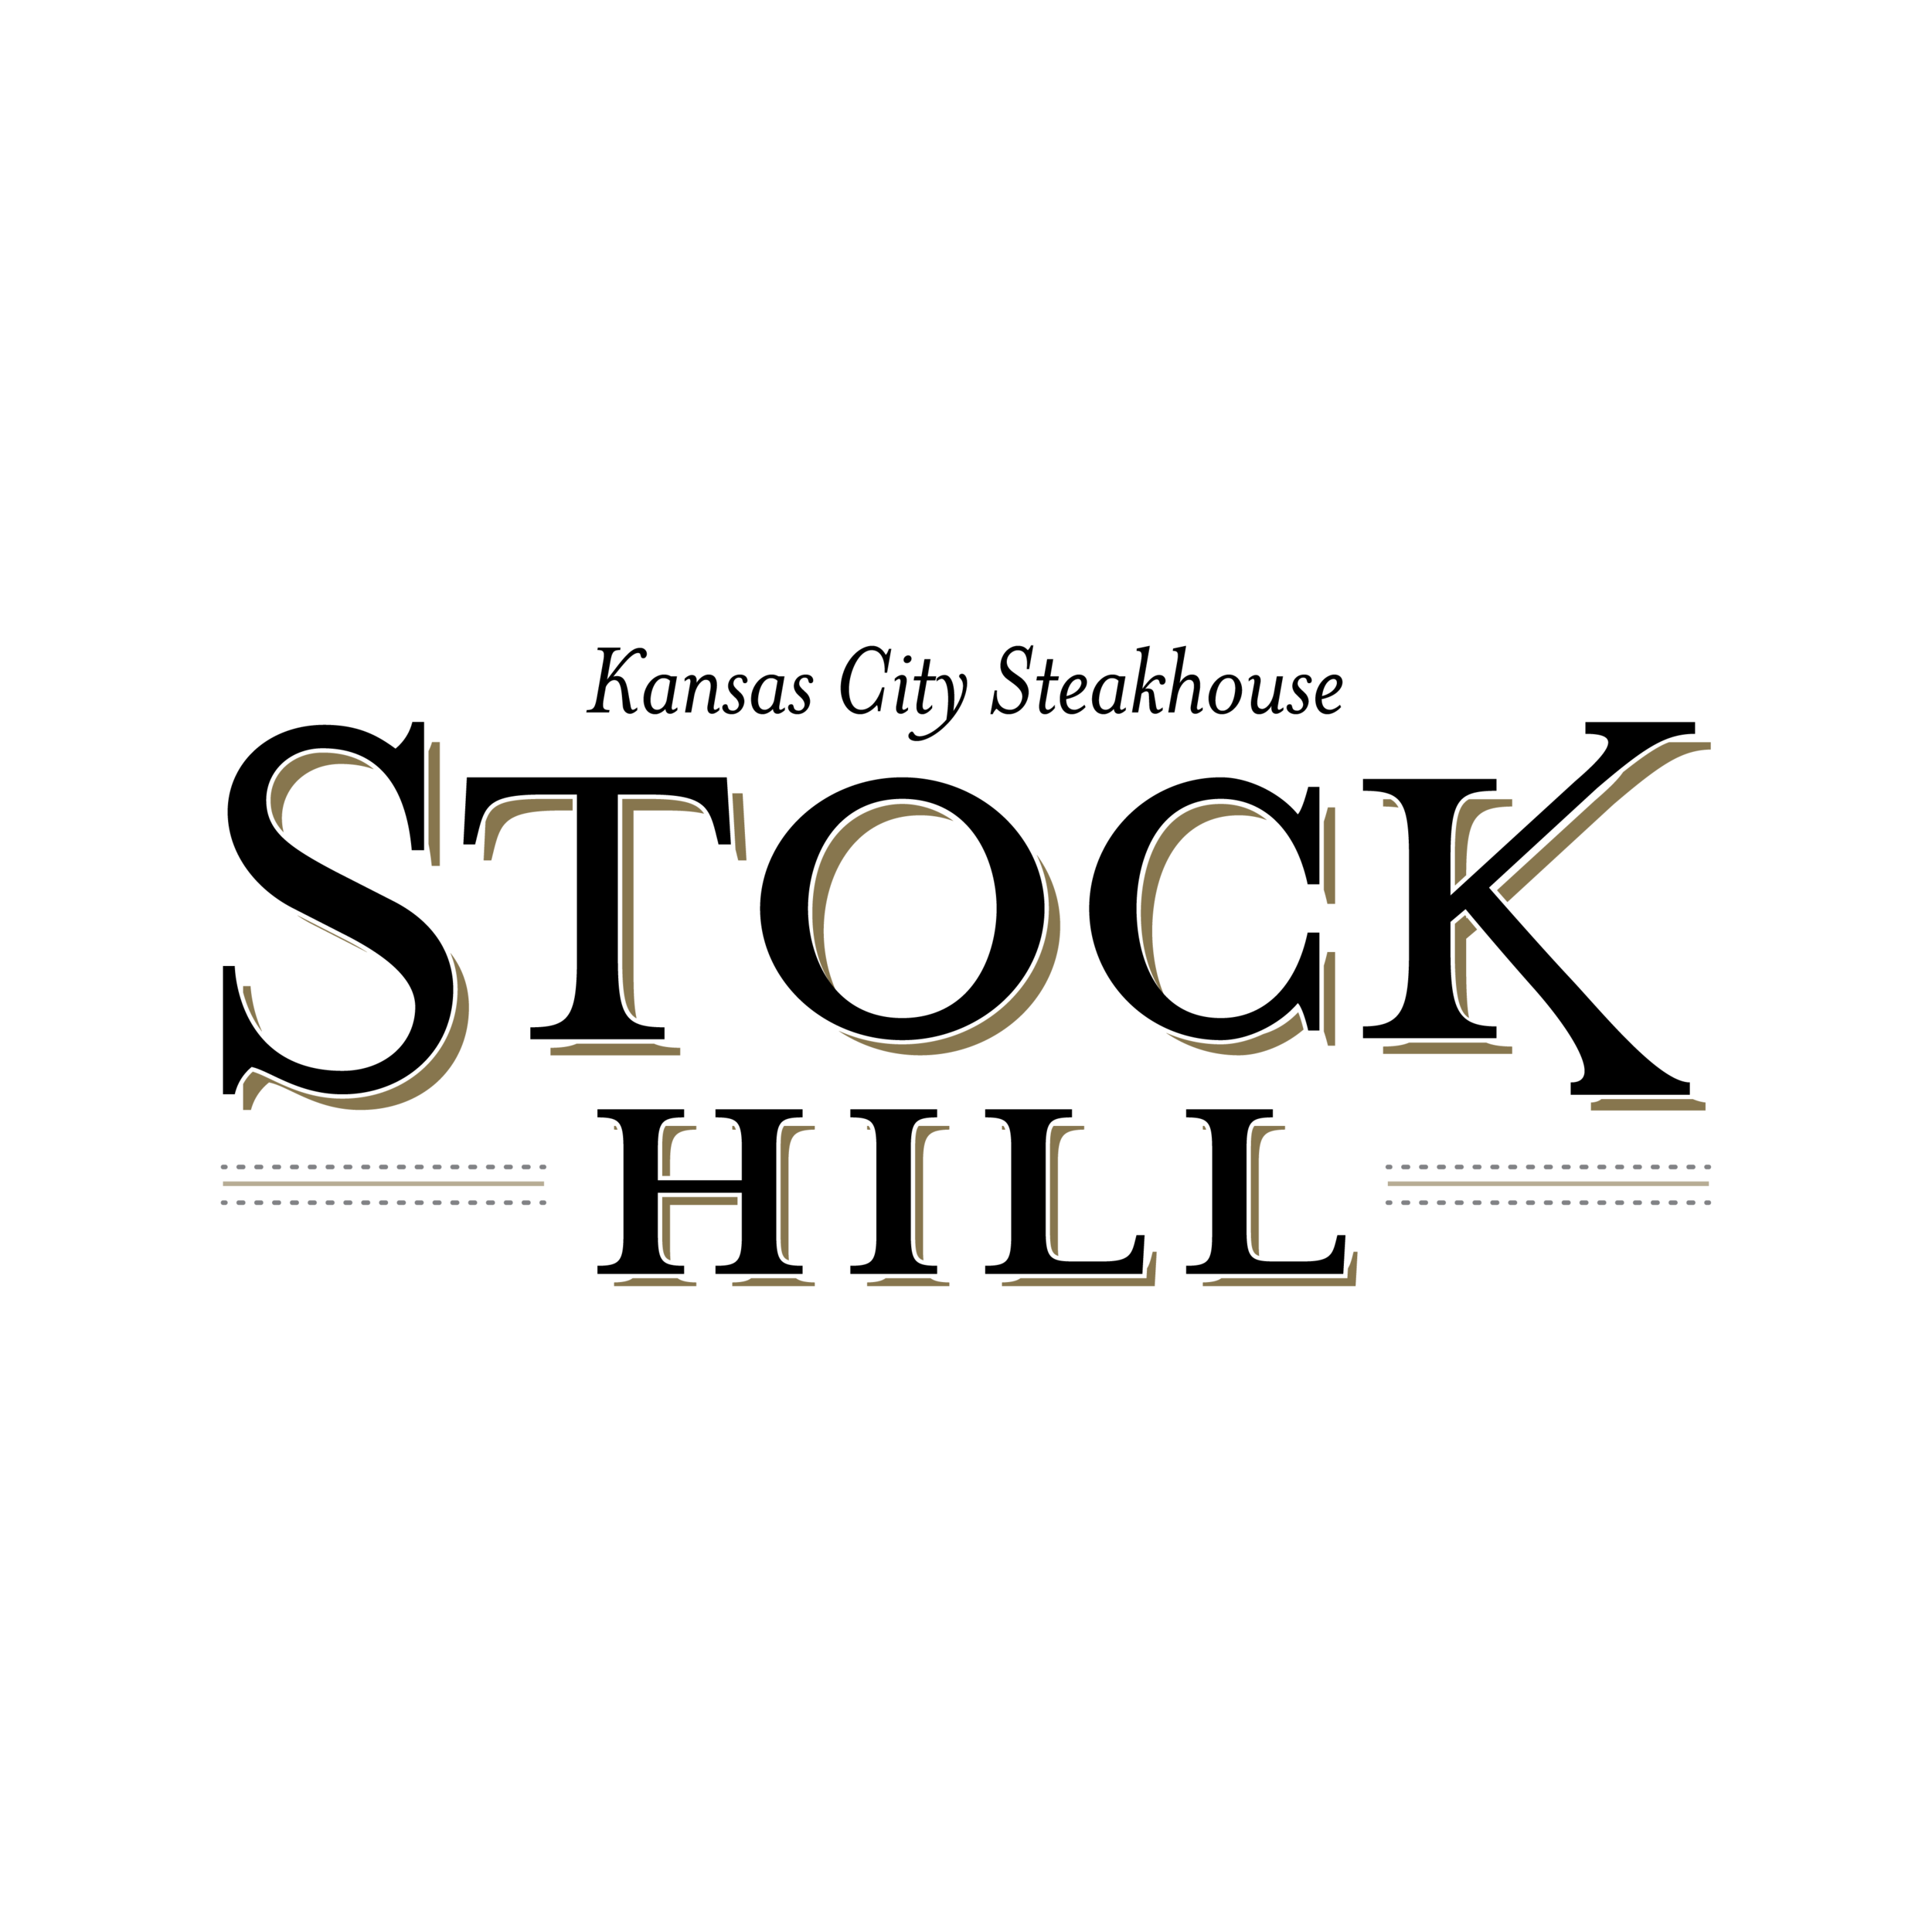 StockHill_logo_tagline.png